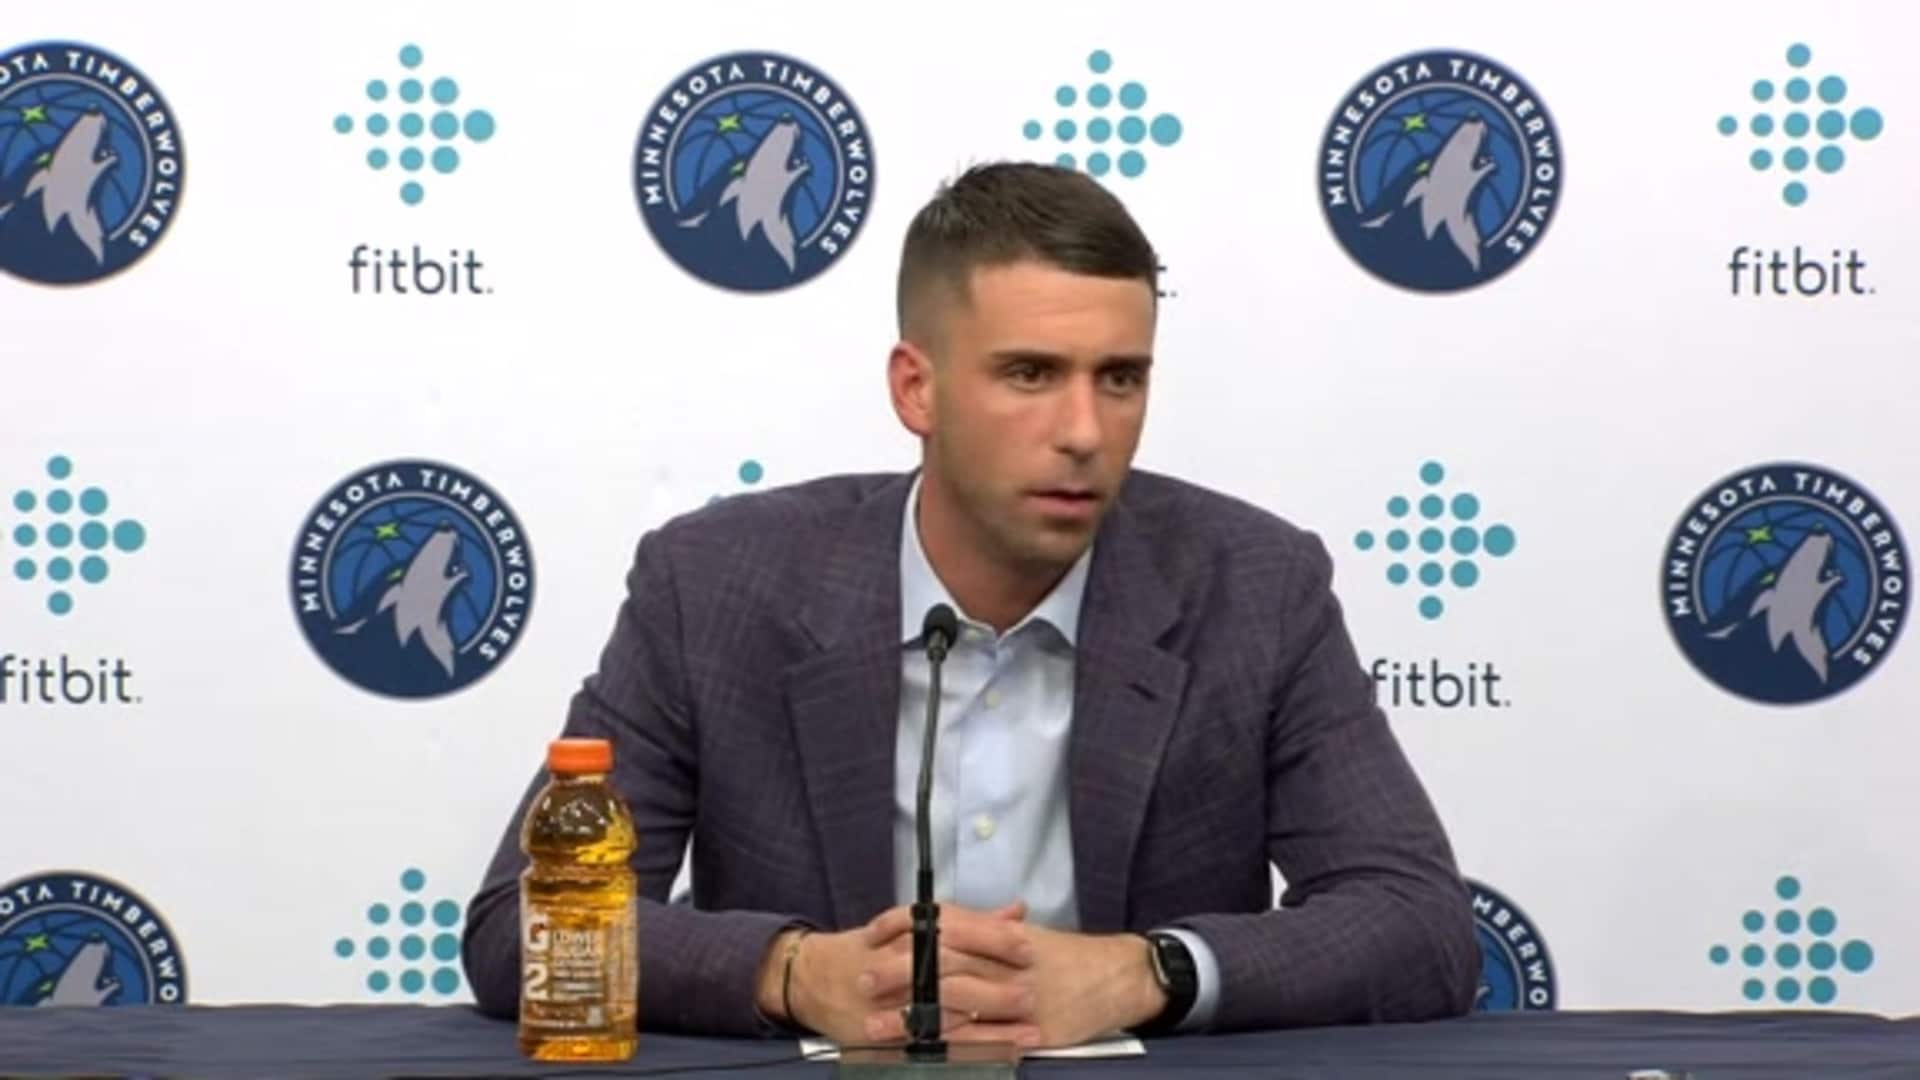 Timberwolves Coach Ryan Saunders After Loss To Wizards (11.15.19)